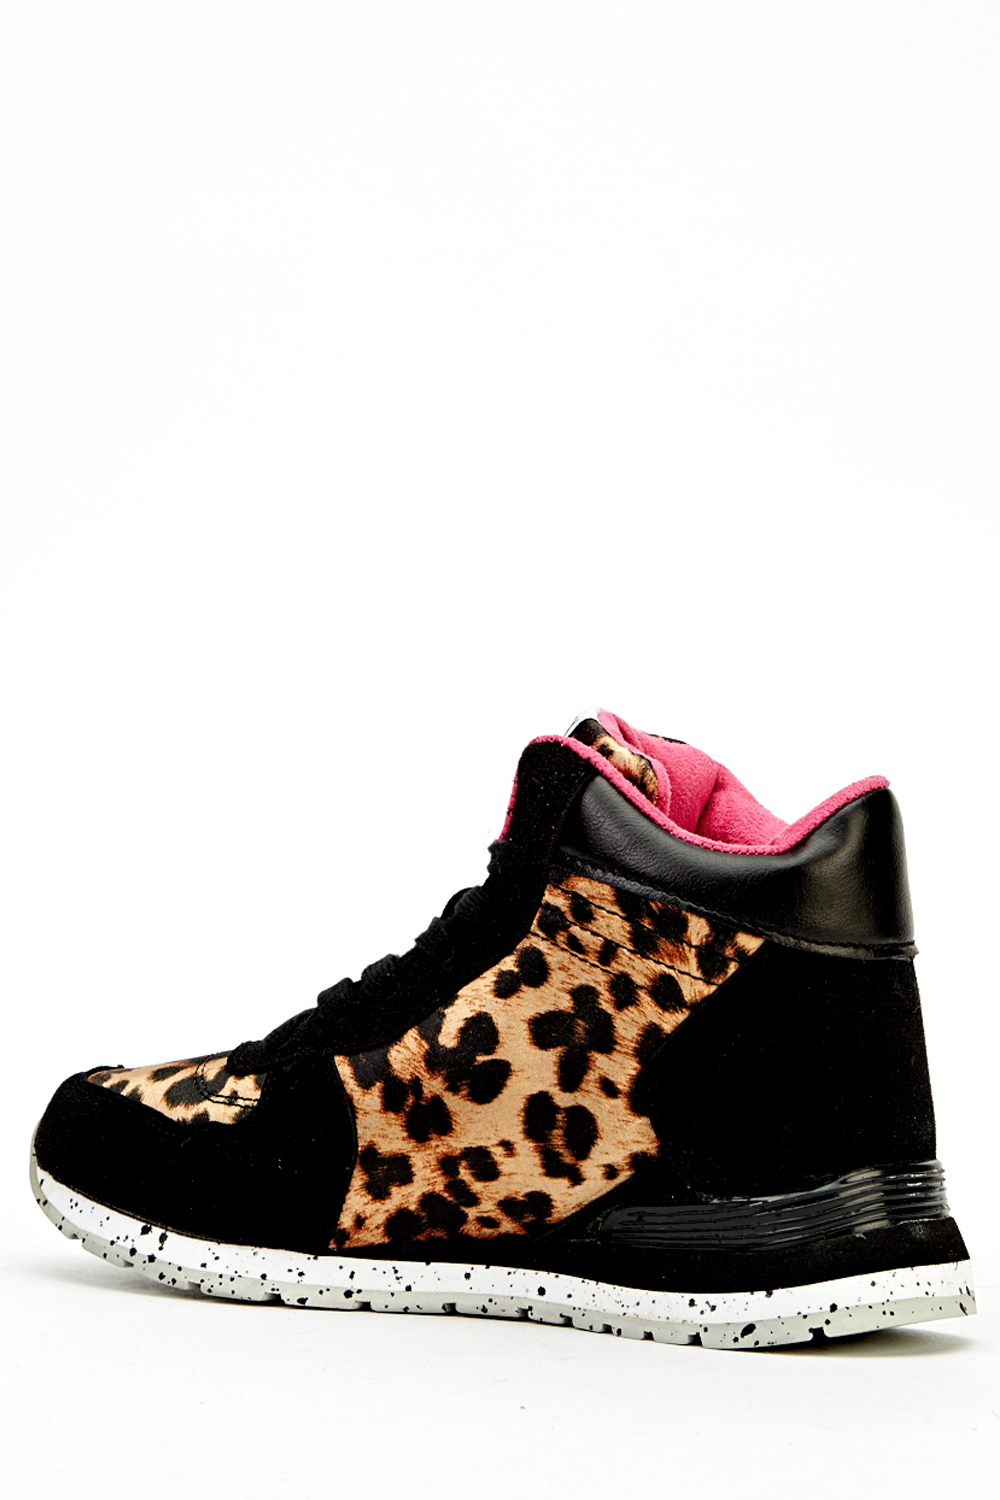 Leopard Print Contrast High Top Trainers Just 163 5